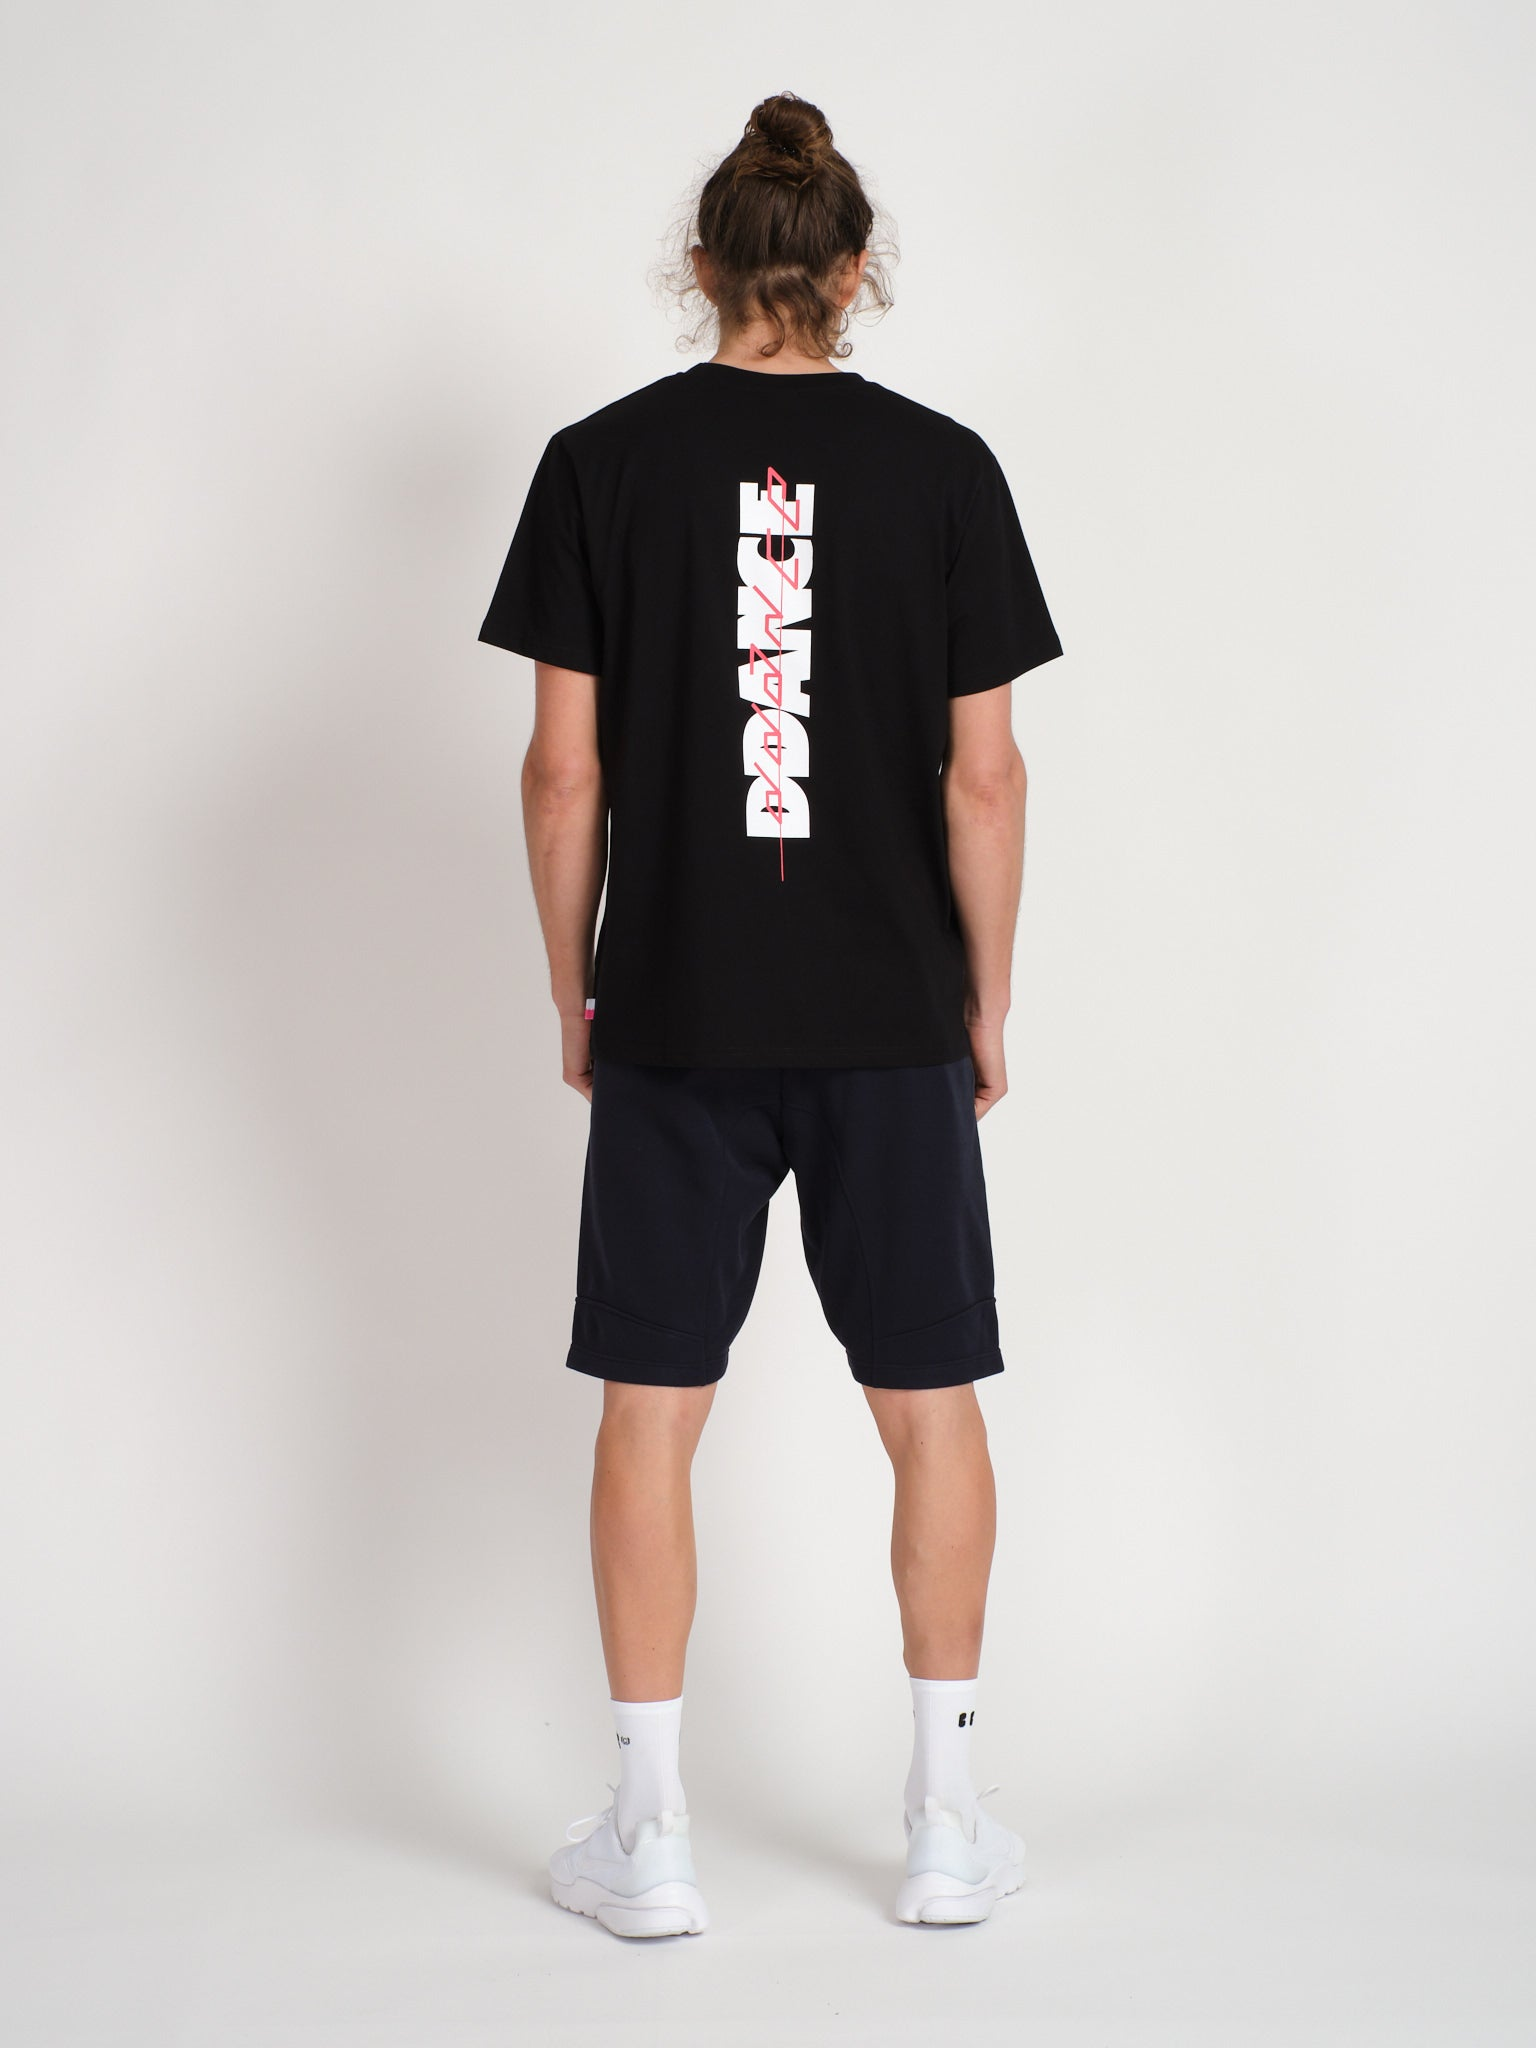 DDANCE T-Shirt Black